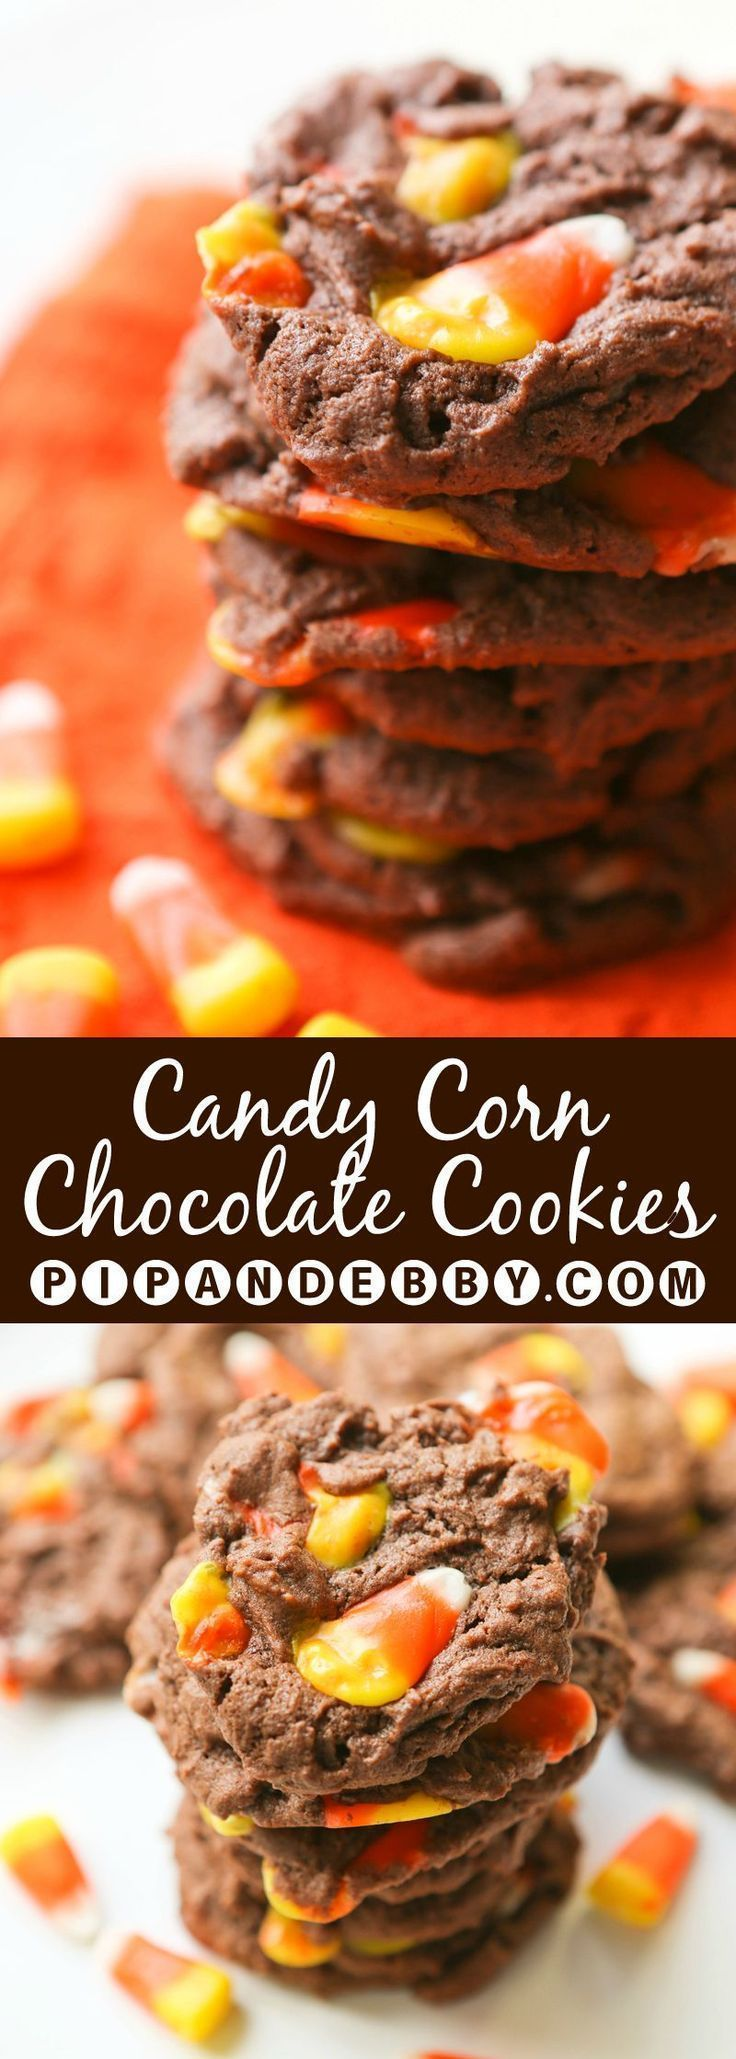 Candy Corn Cookies Chocolate Candy Corn Cookies  GREAT way to use up candy corn My 7yearold proclaimed these to be his new favorite dessert of ALL TIME   Chocolate Candy...